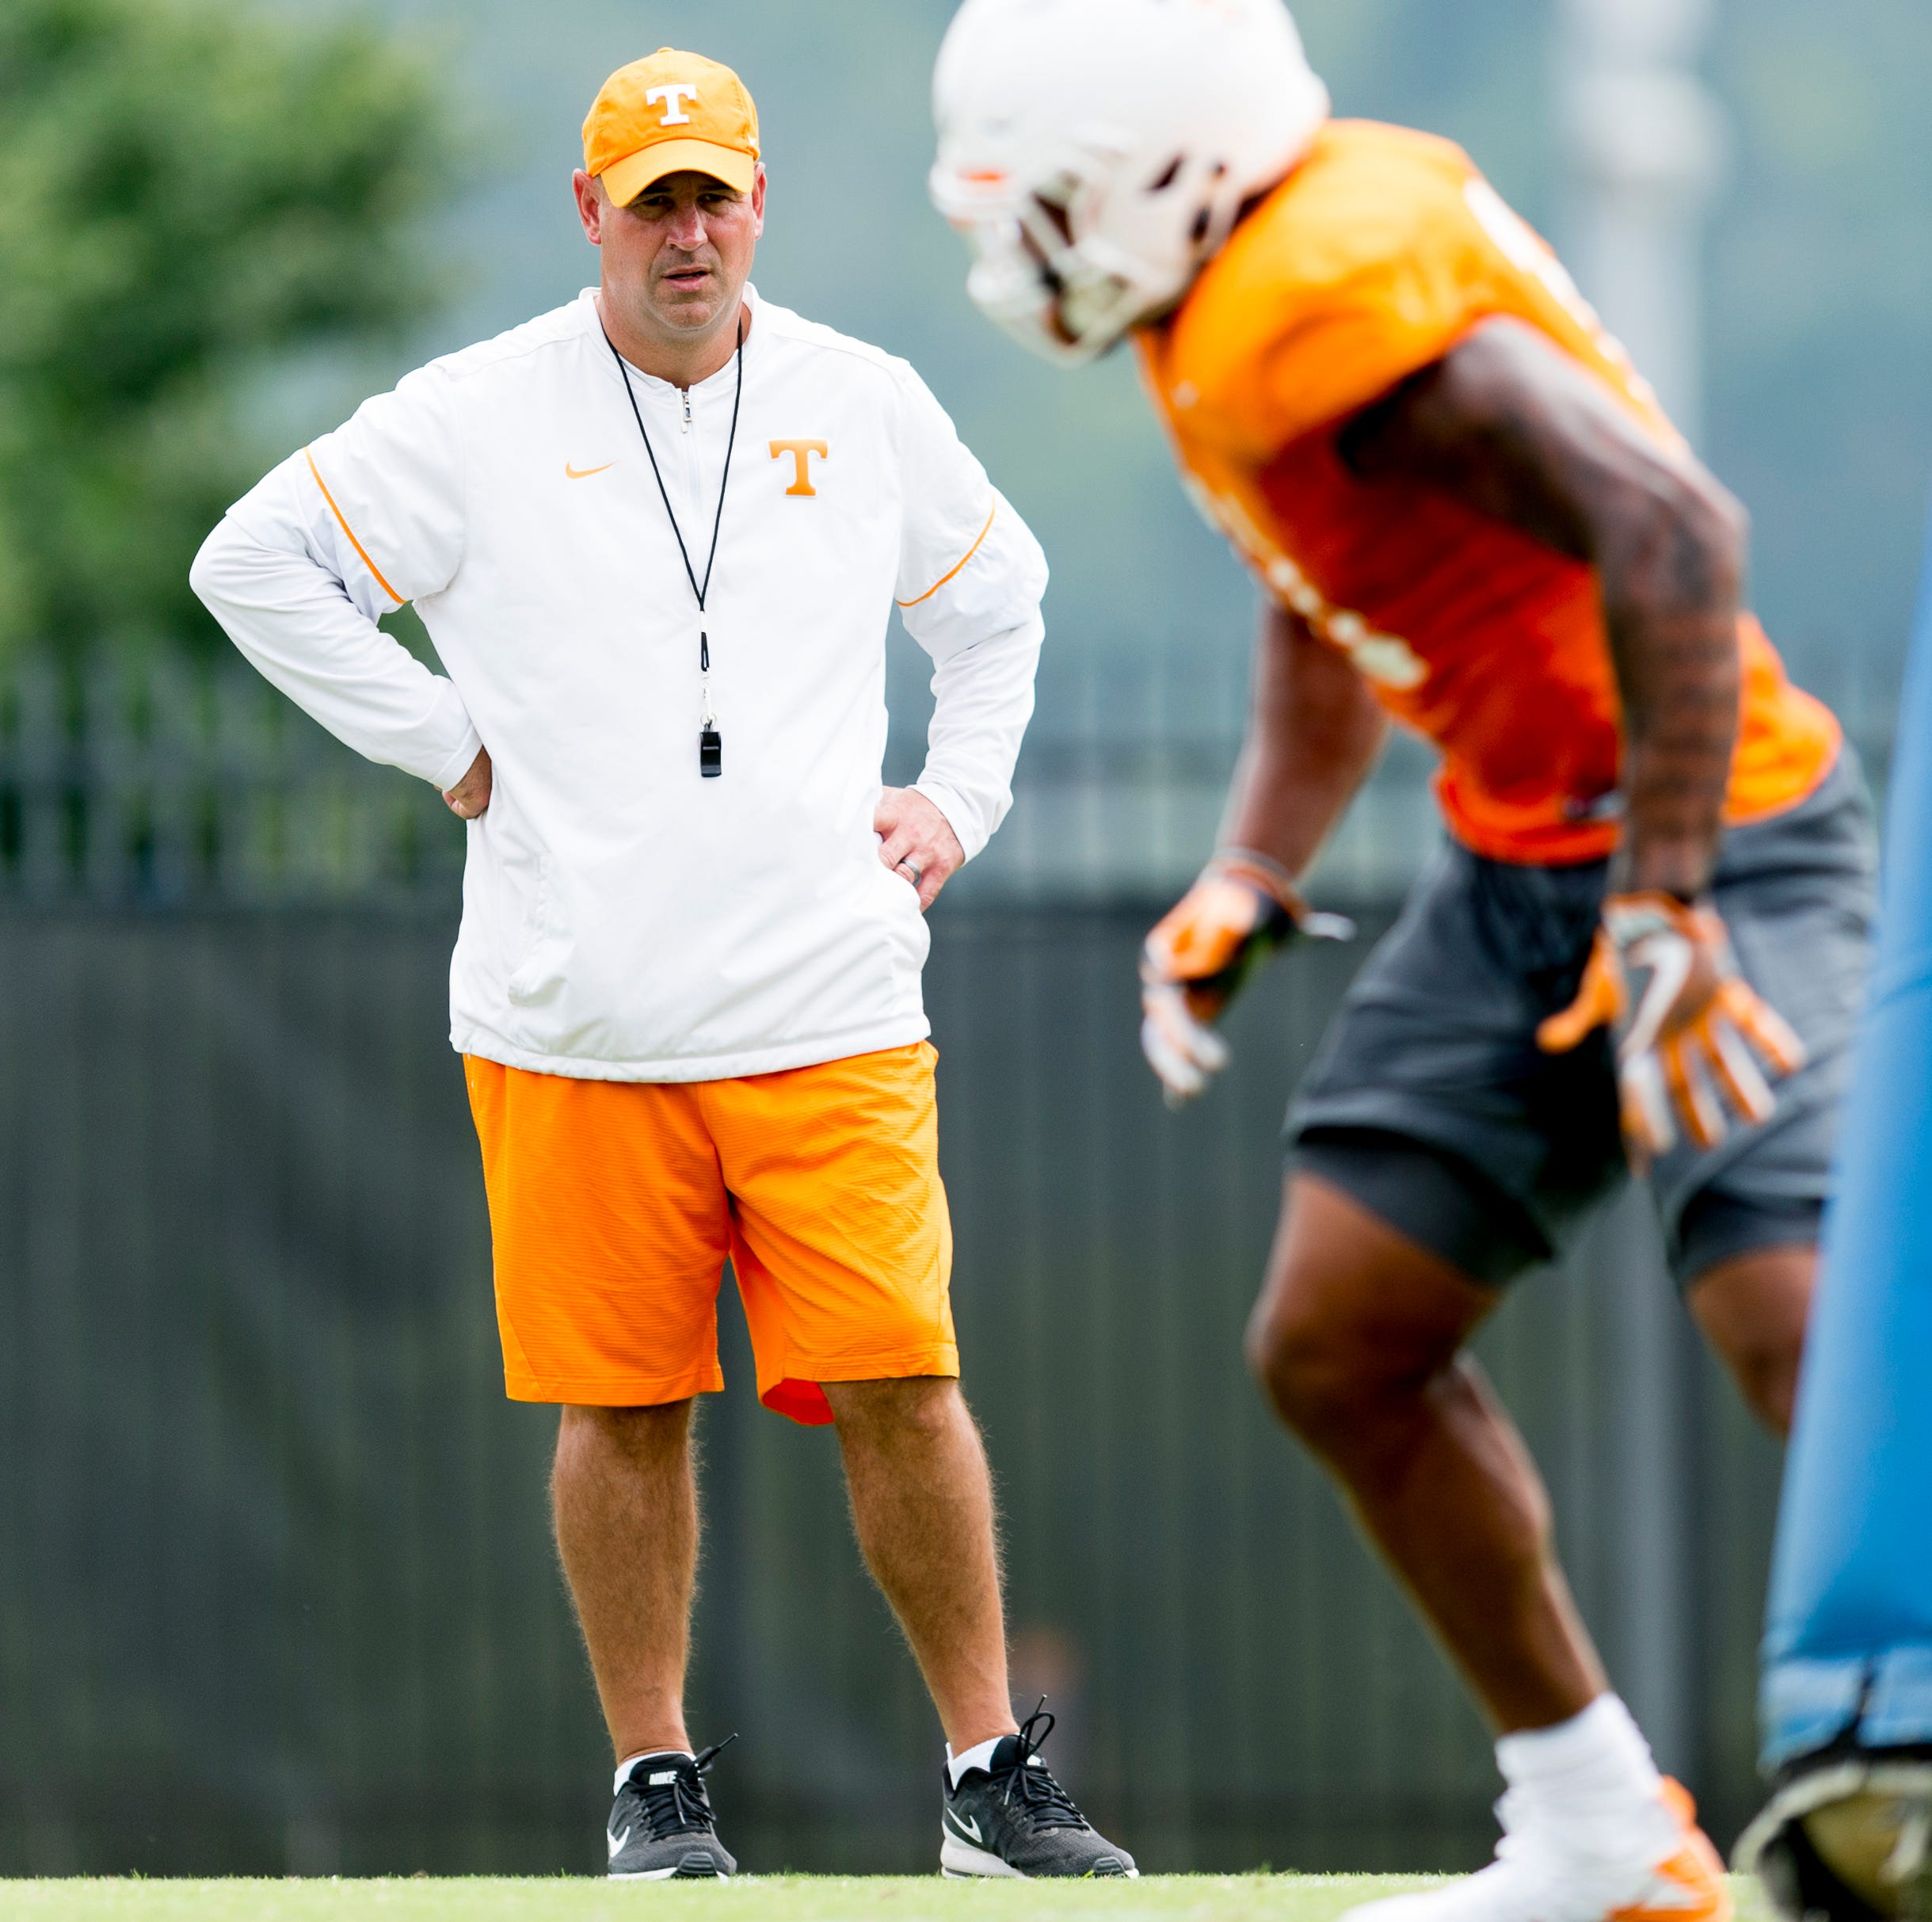 Jeremy Pruitt, Dana Holgorsen discuss preparation for UT Vols vs. West Virginia